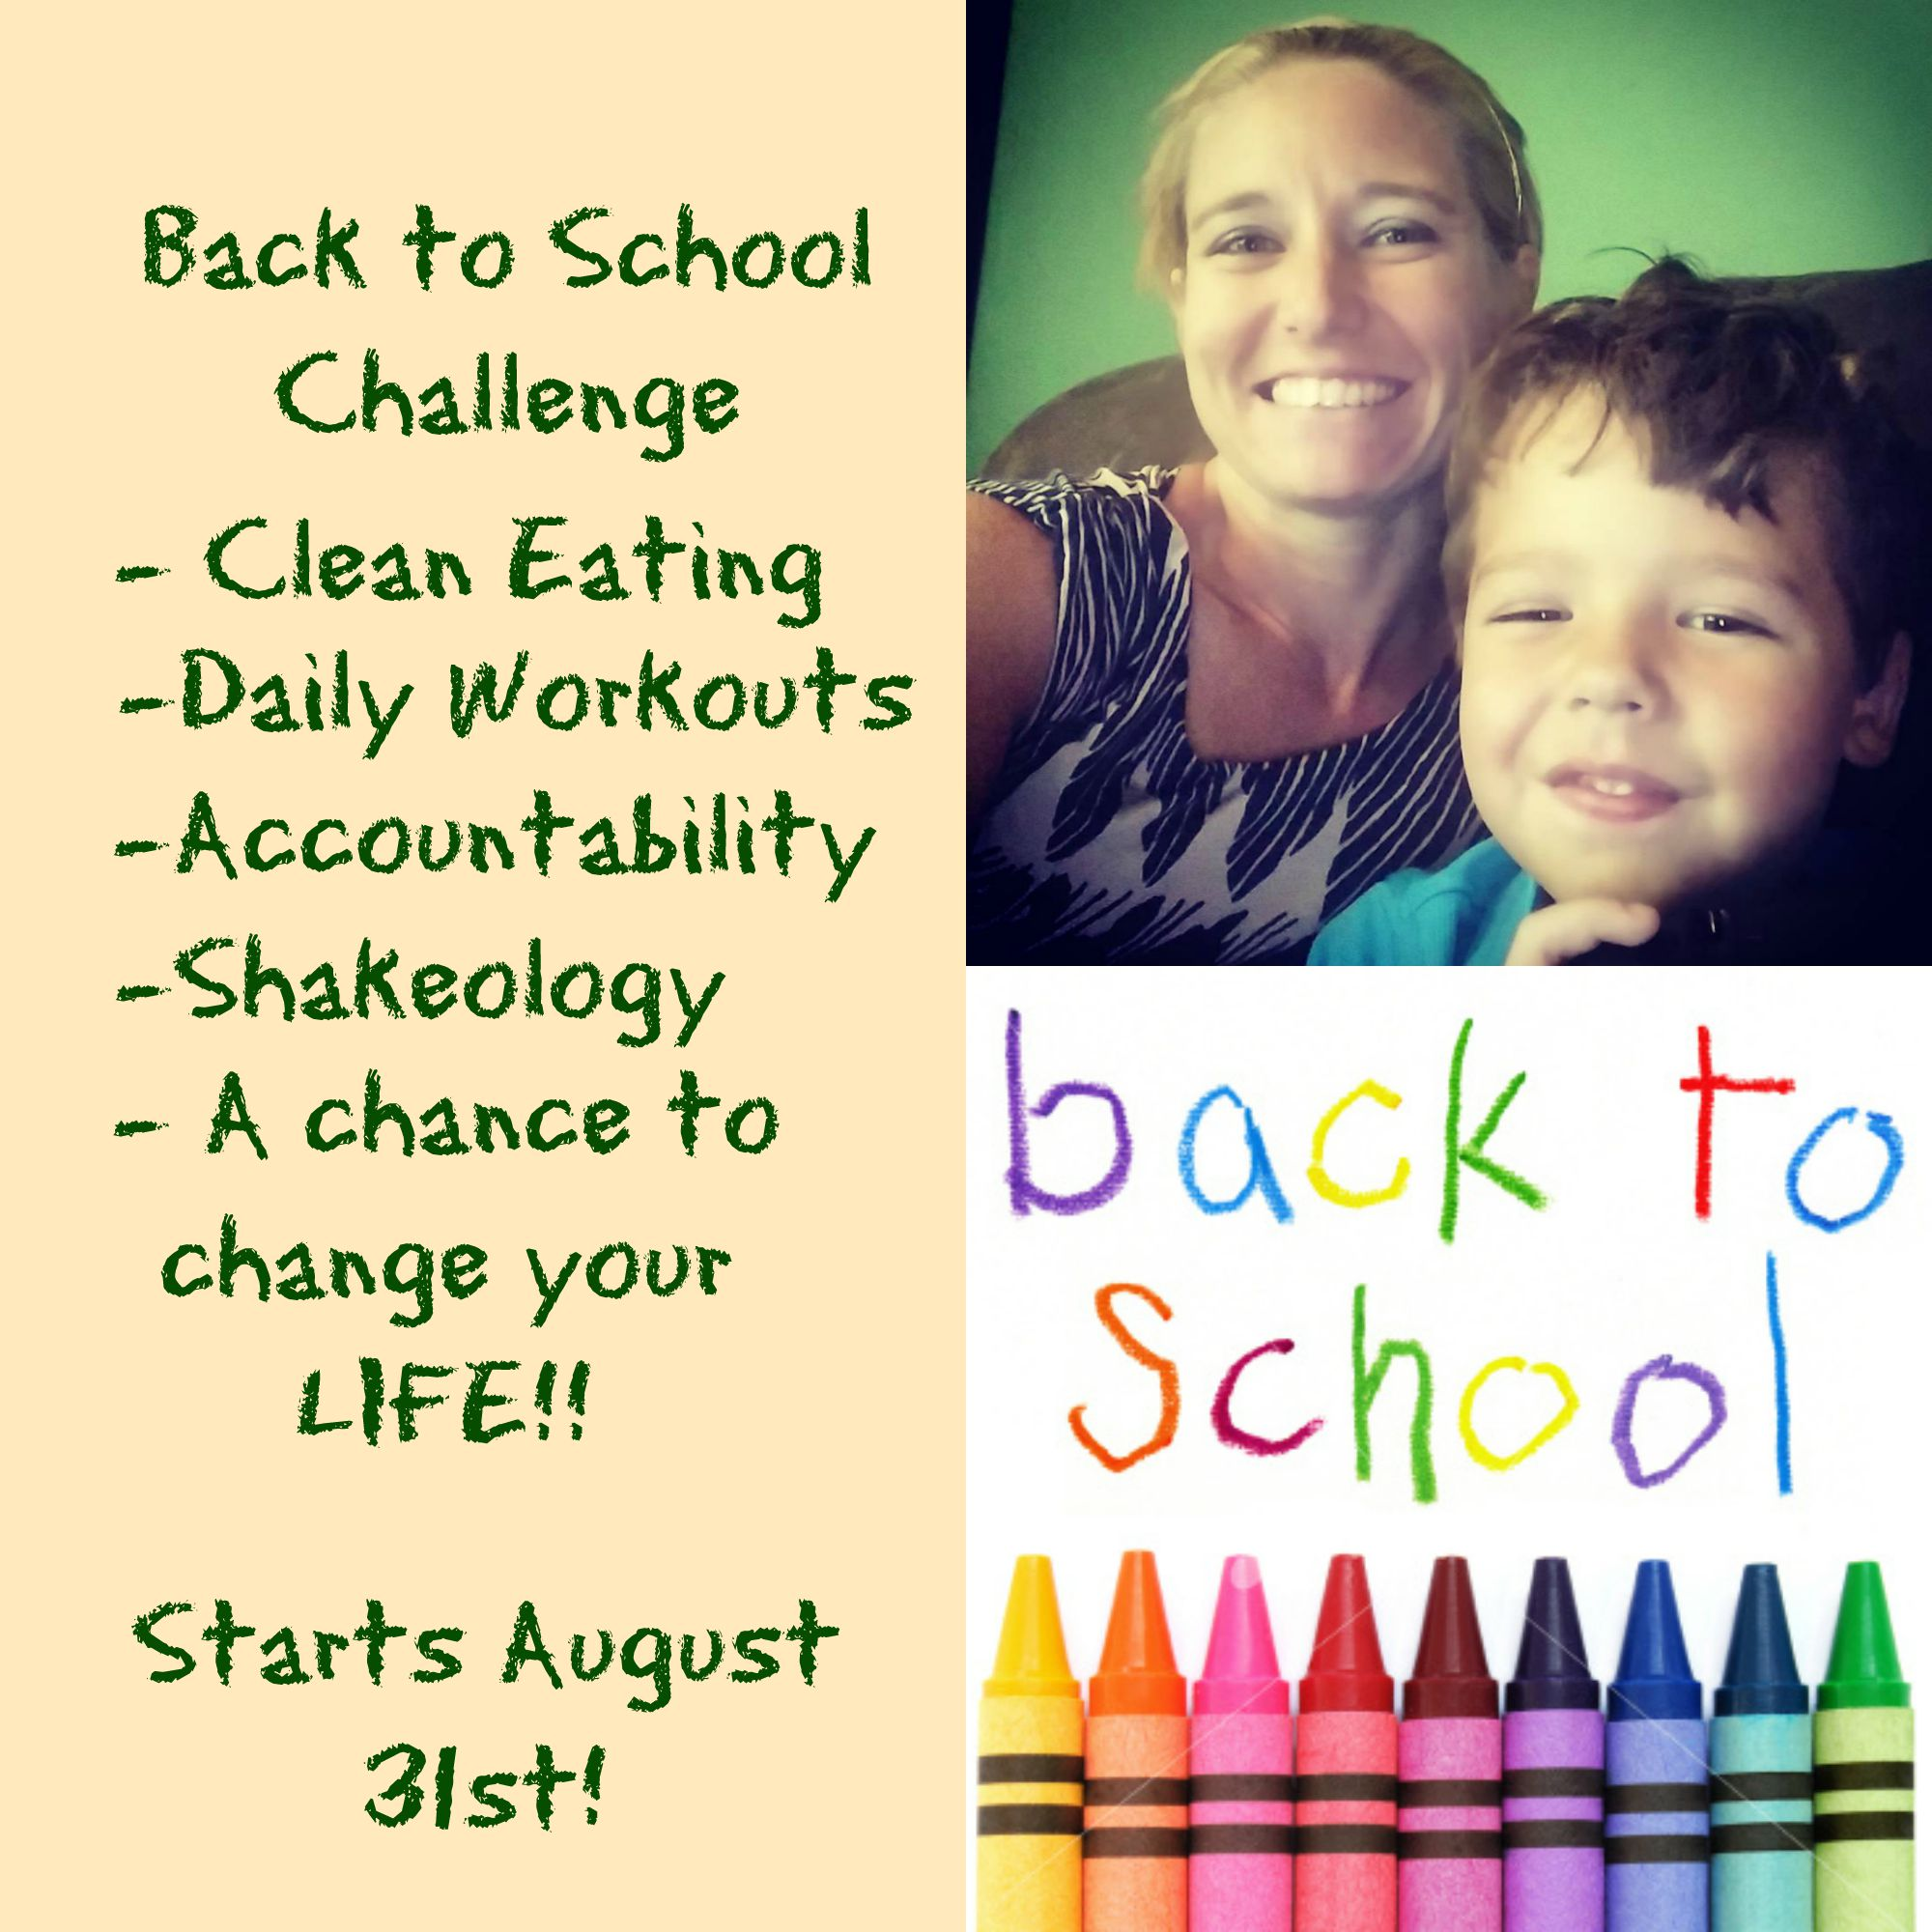 Back to School Challenge